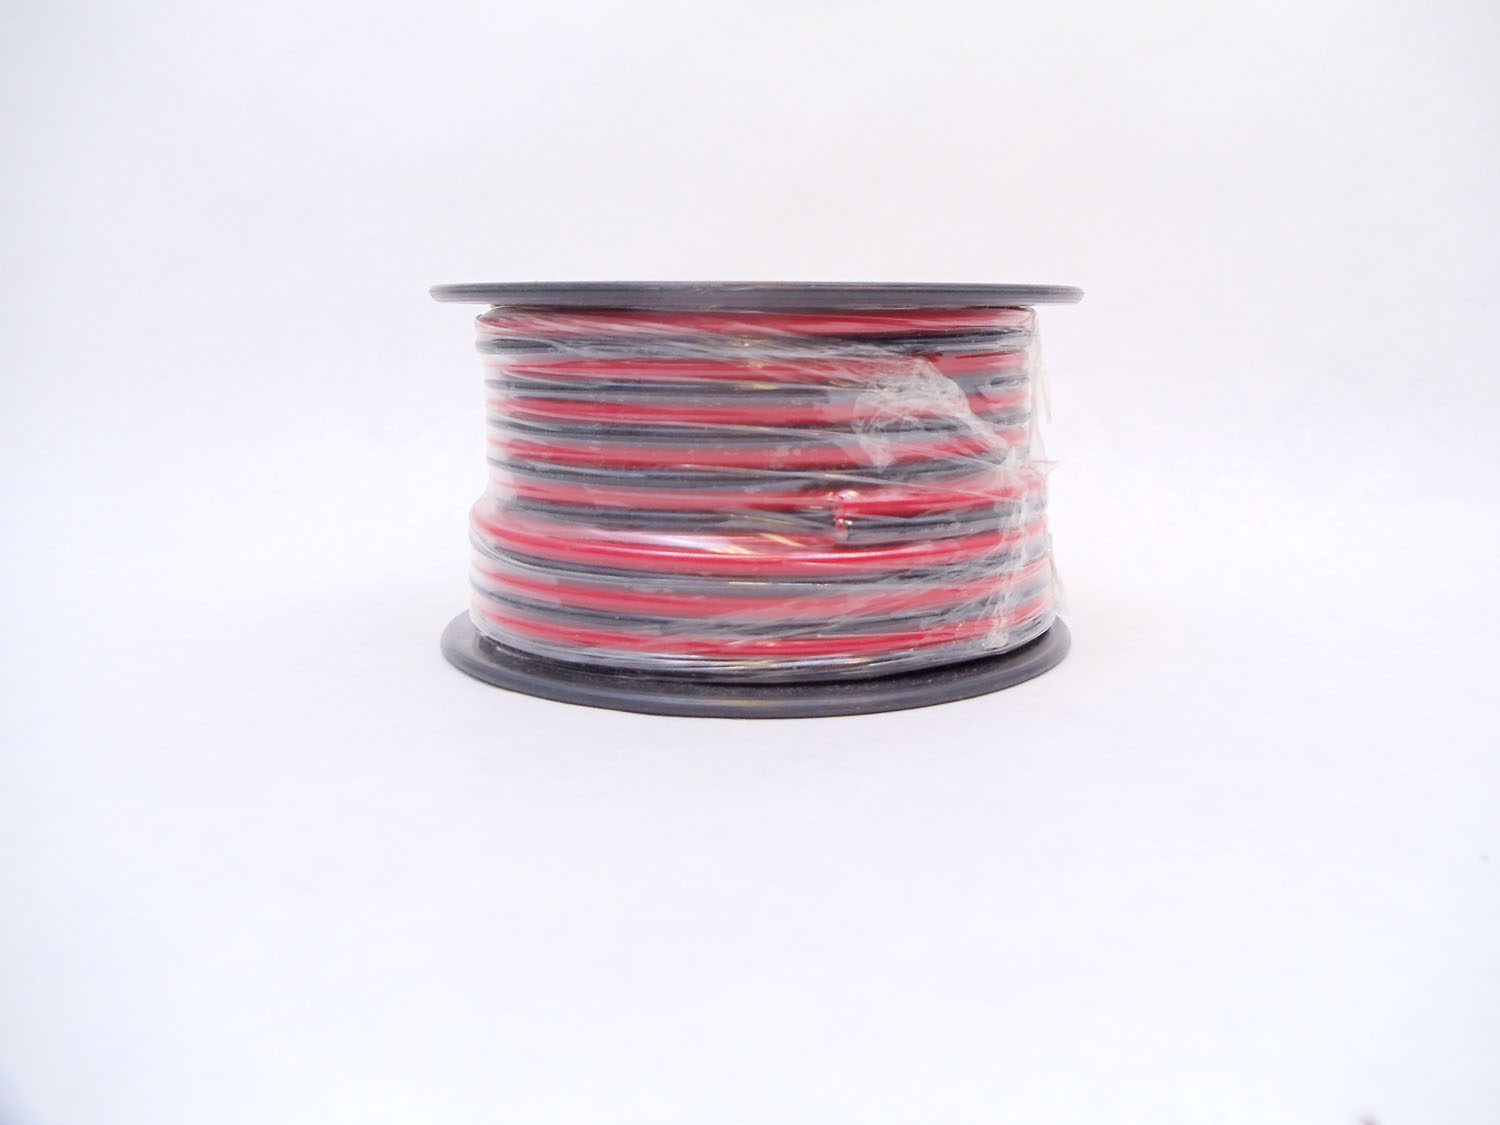 18 GAUGE ZIP WIRE (RED/BLACK) 50 FT SPOOL